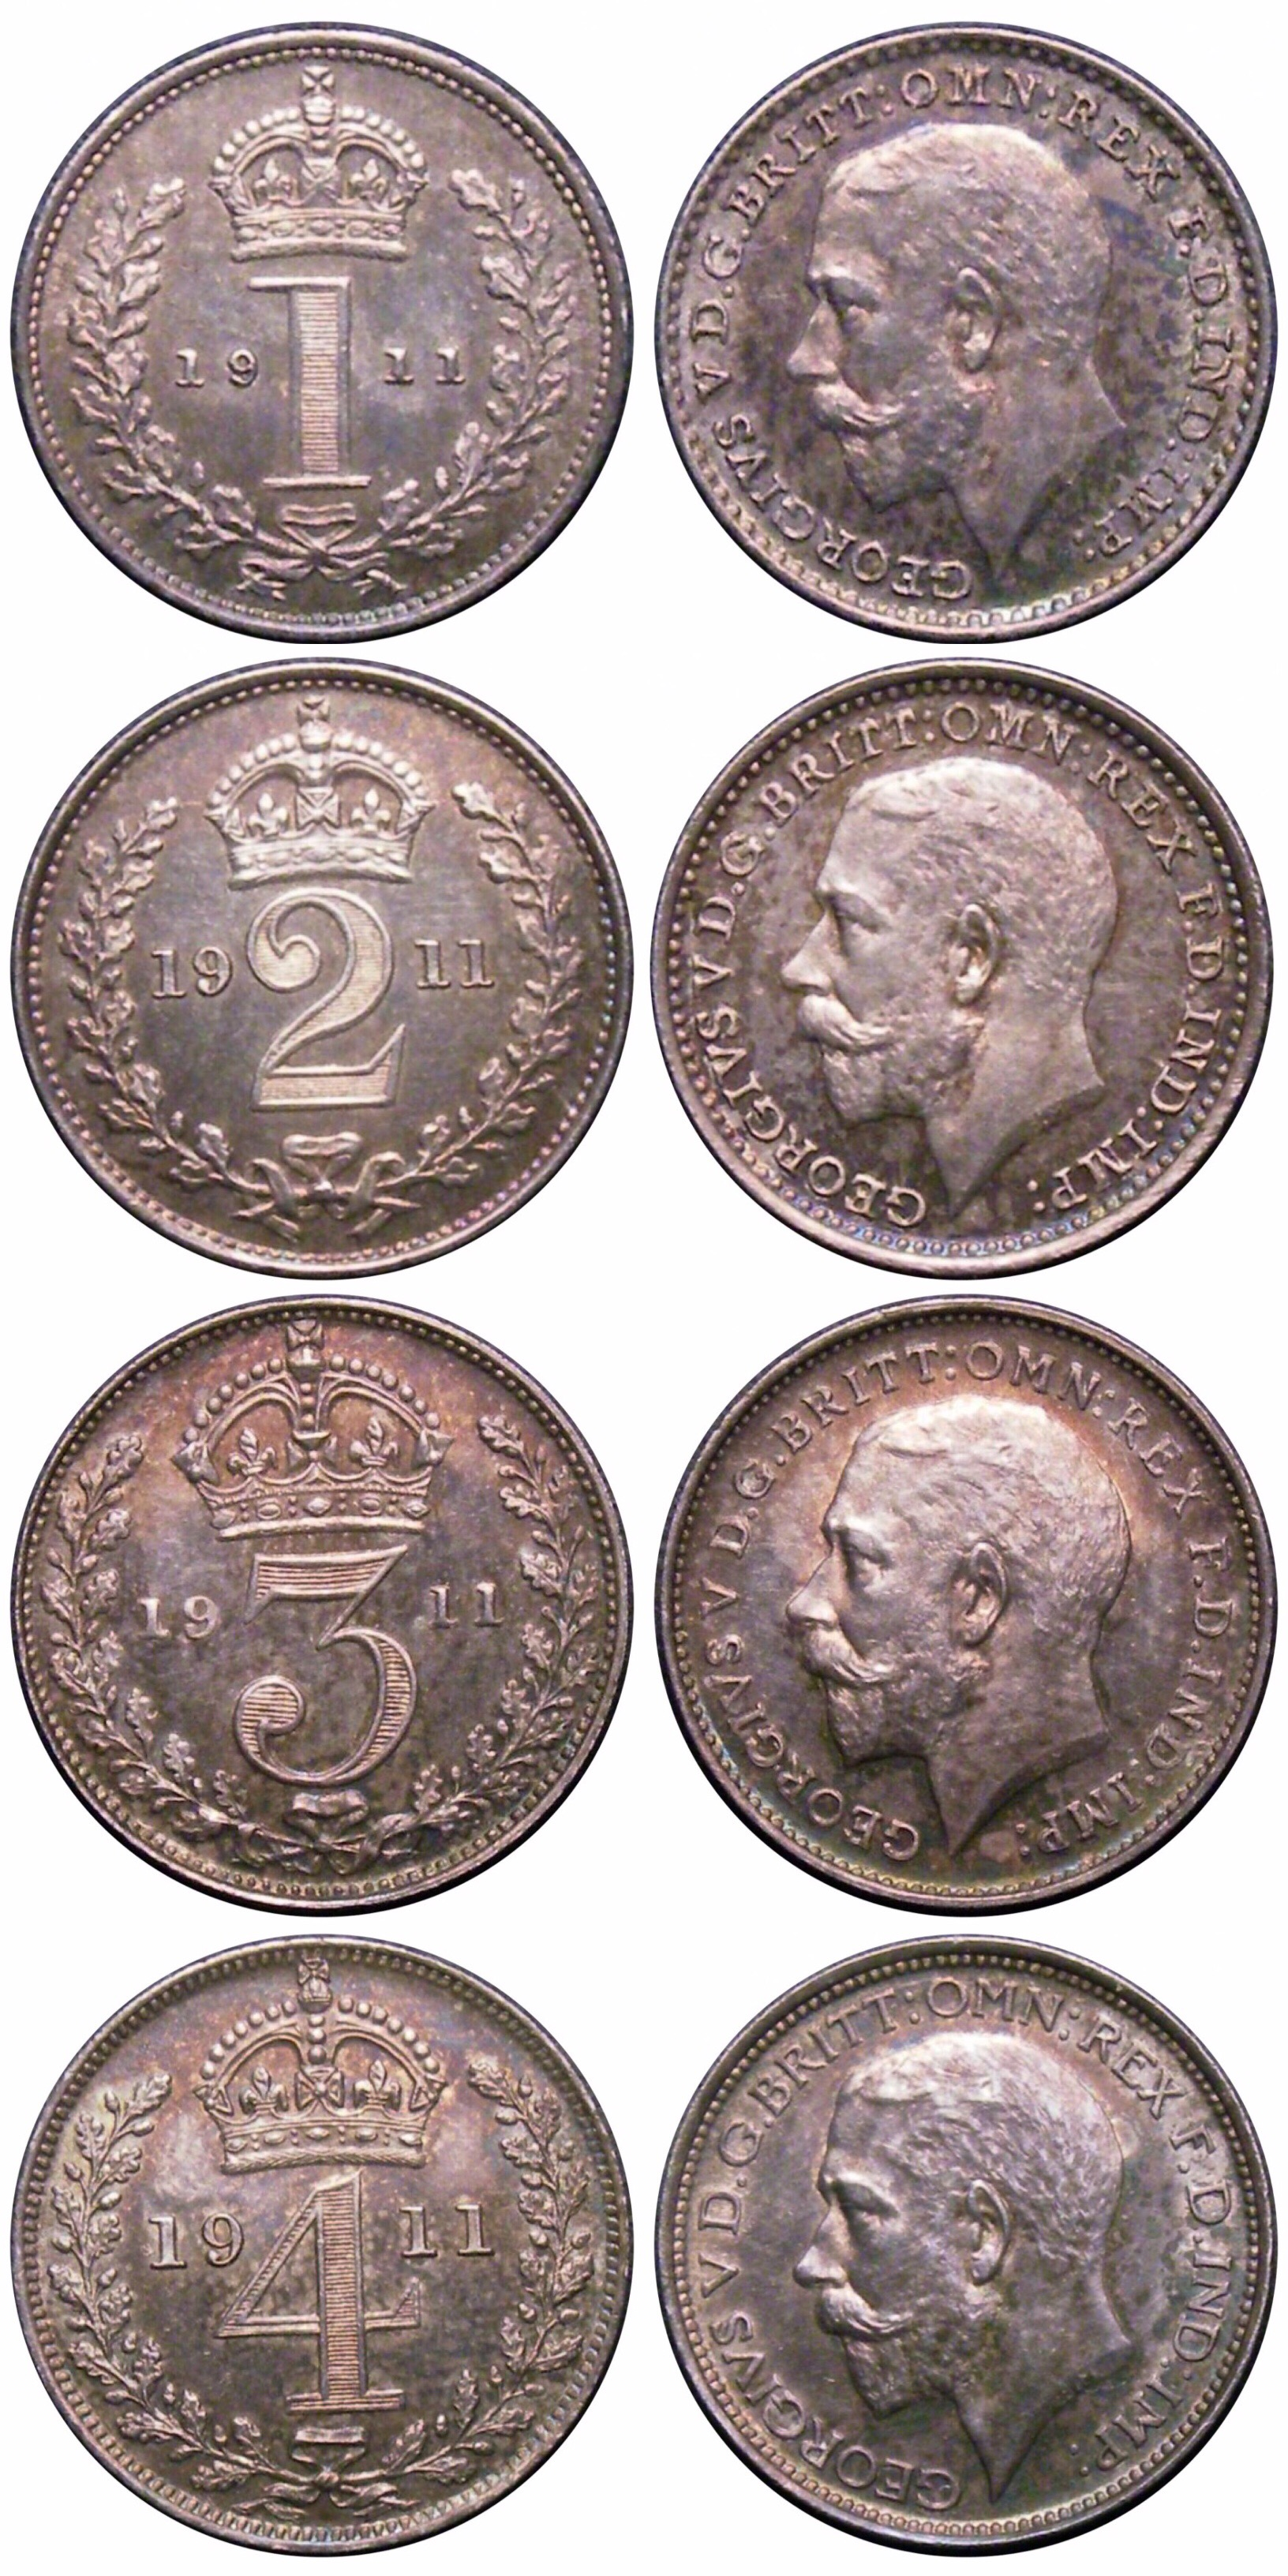 1911 Maundy set, CGS 85 85 88 88, BU-nFDC, George V